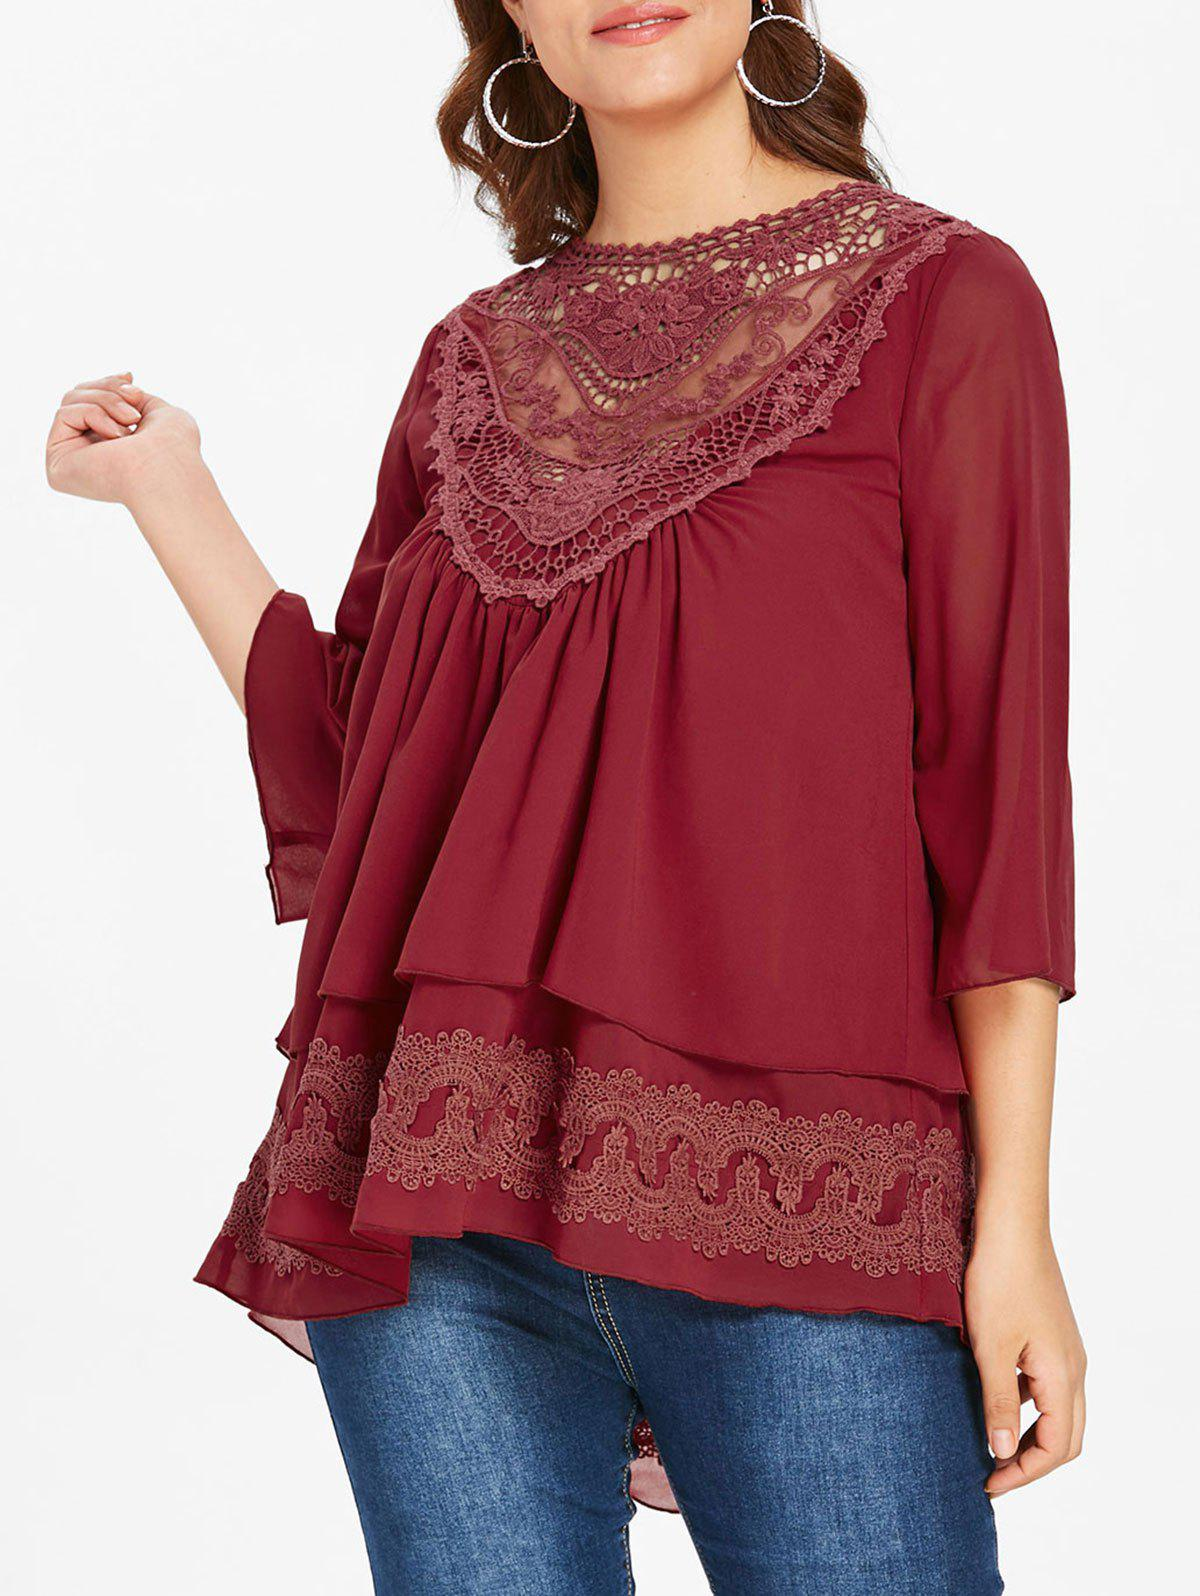 7c25dca19ff 27% OFF] Plus Size Lace Panel Layered Chiffon Blouse | Rosegal